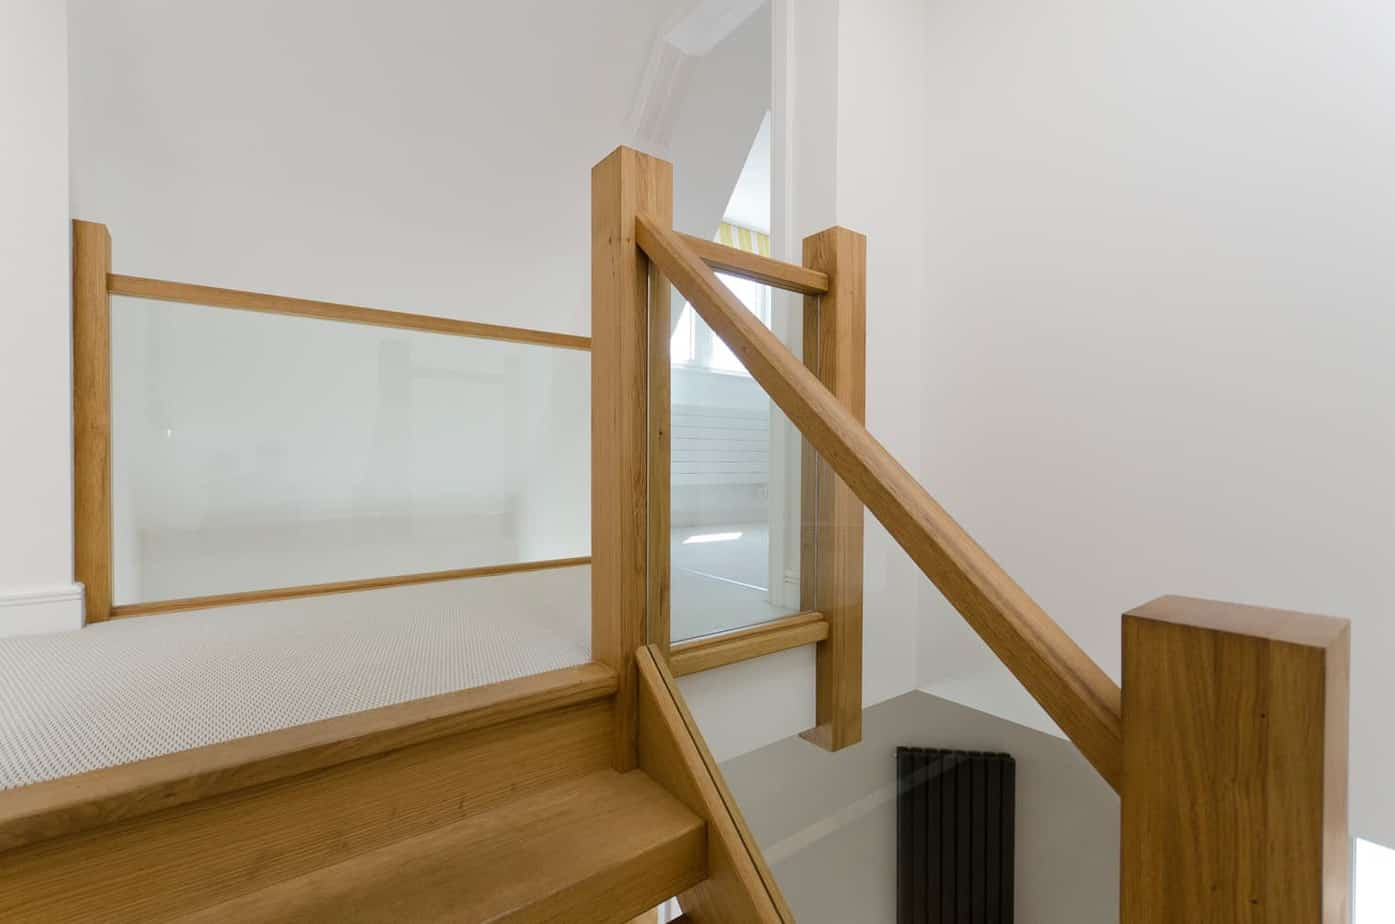 Top of timber stairs with glass panel